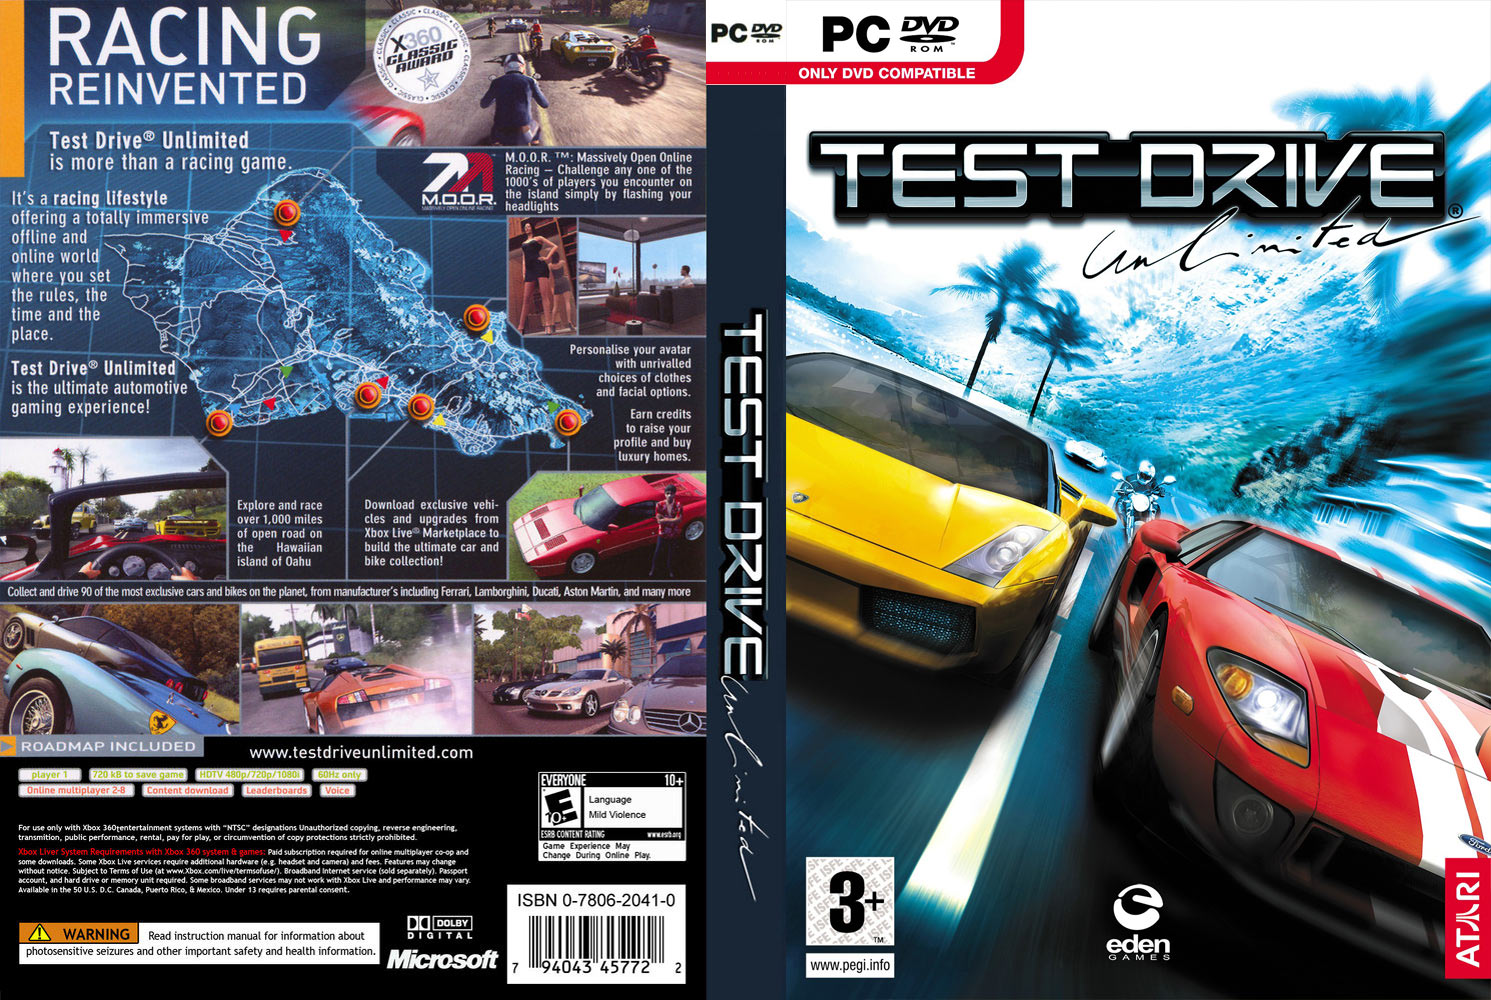 Test Drive Unlimited - DVD obal.